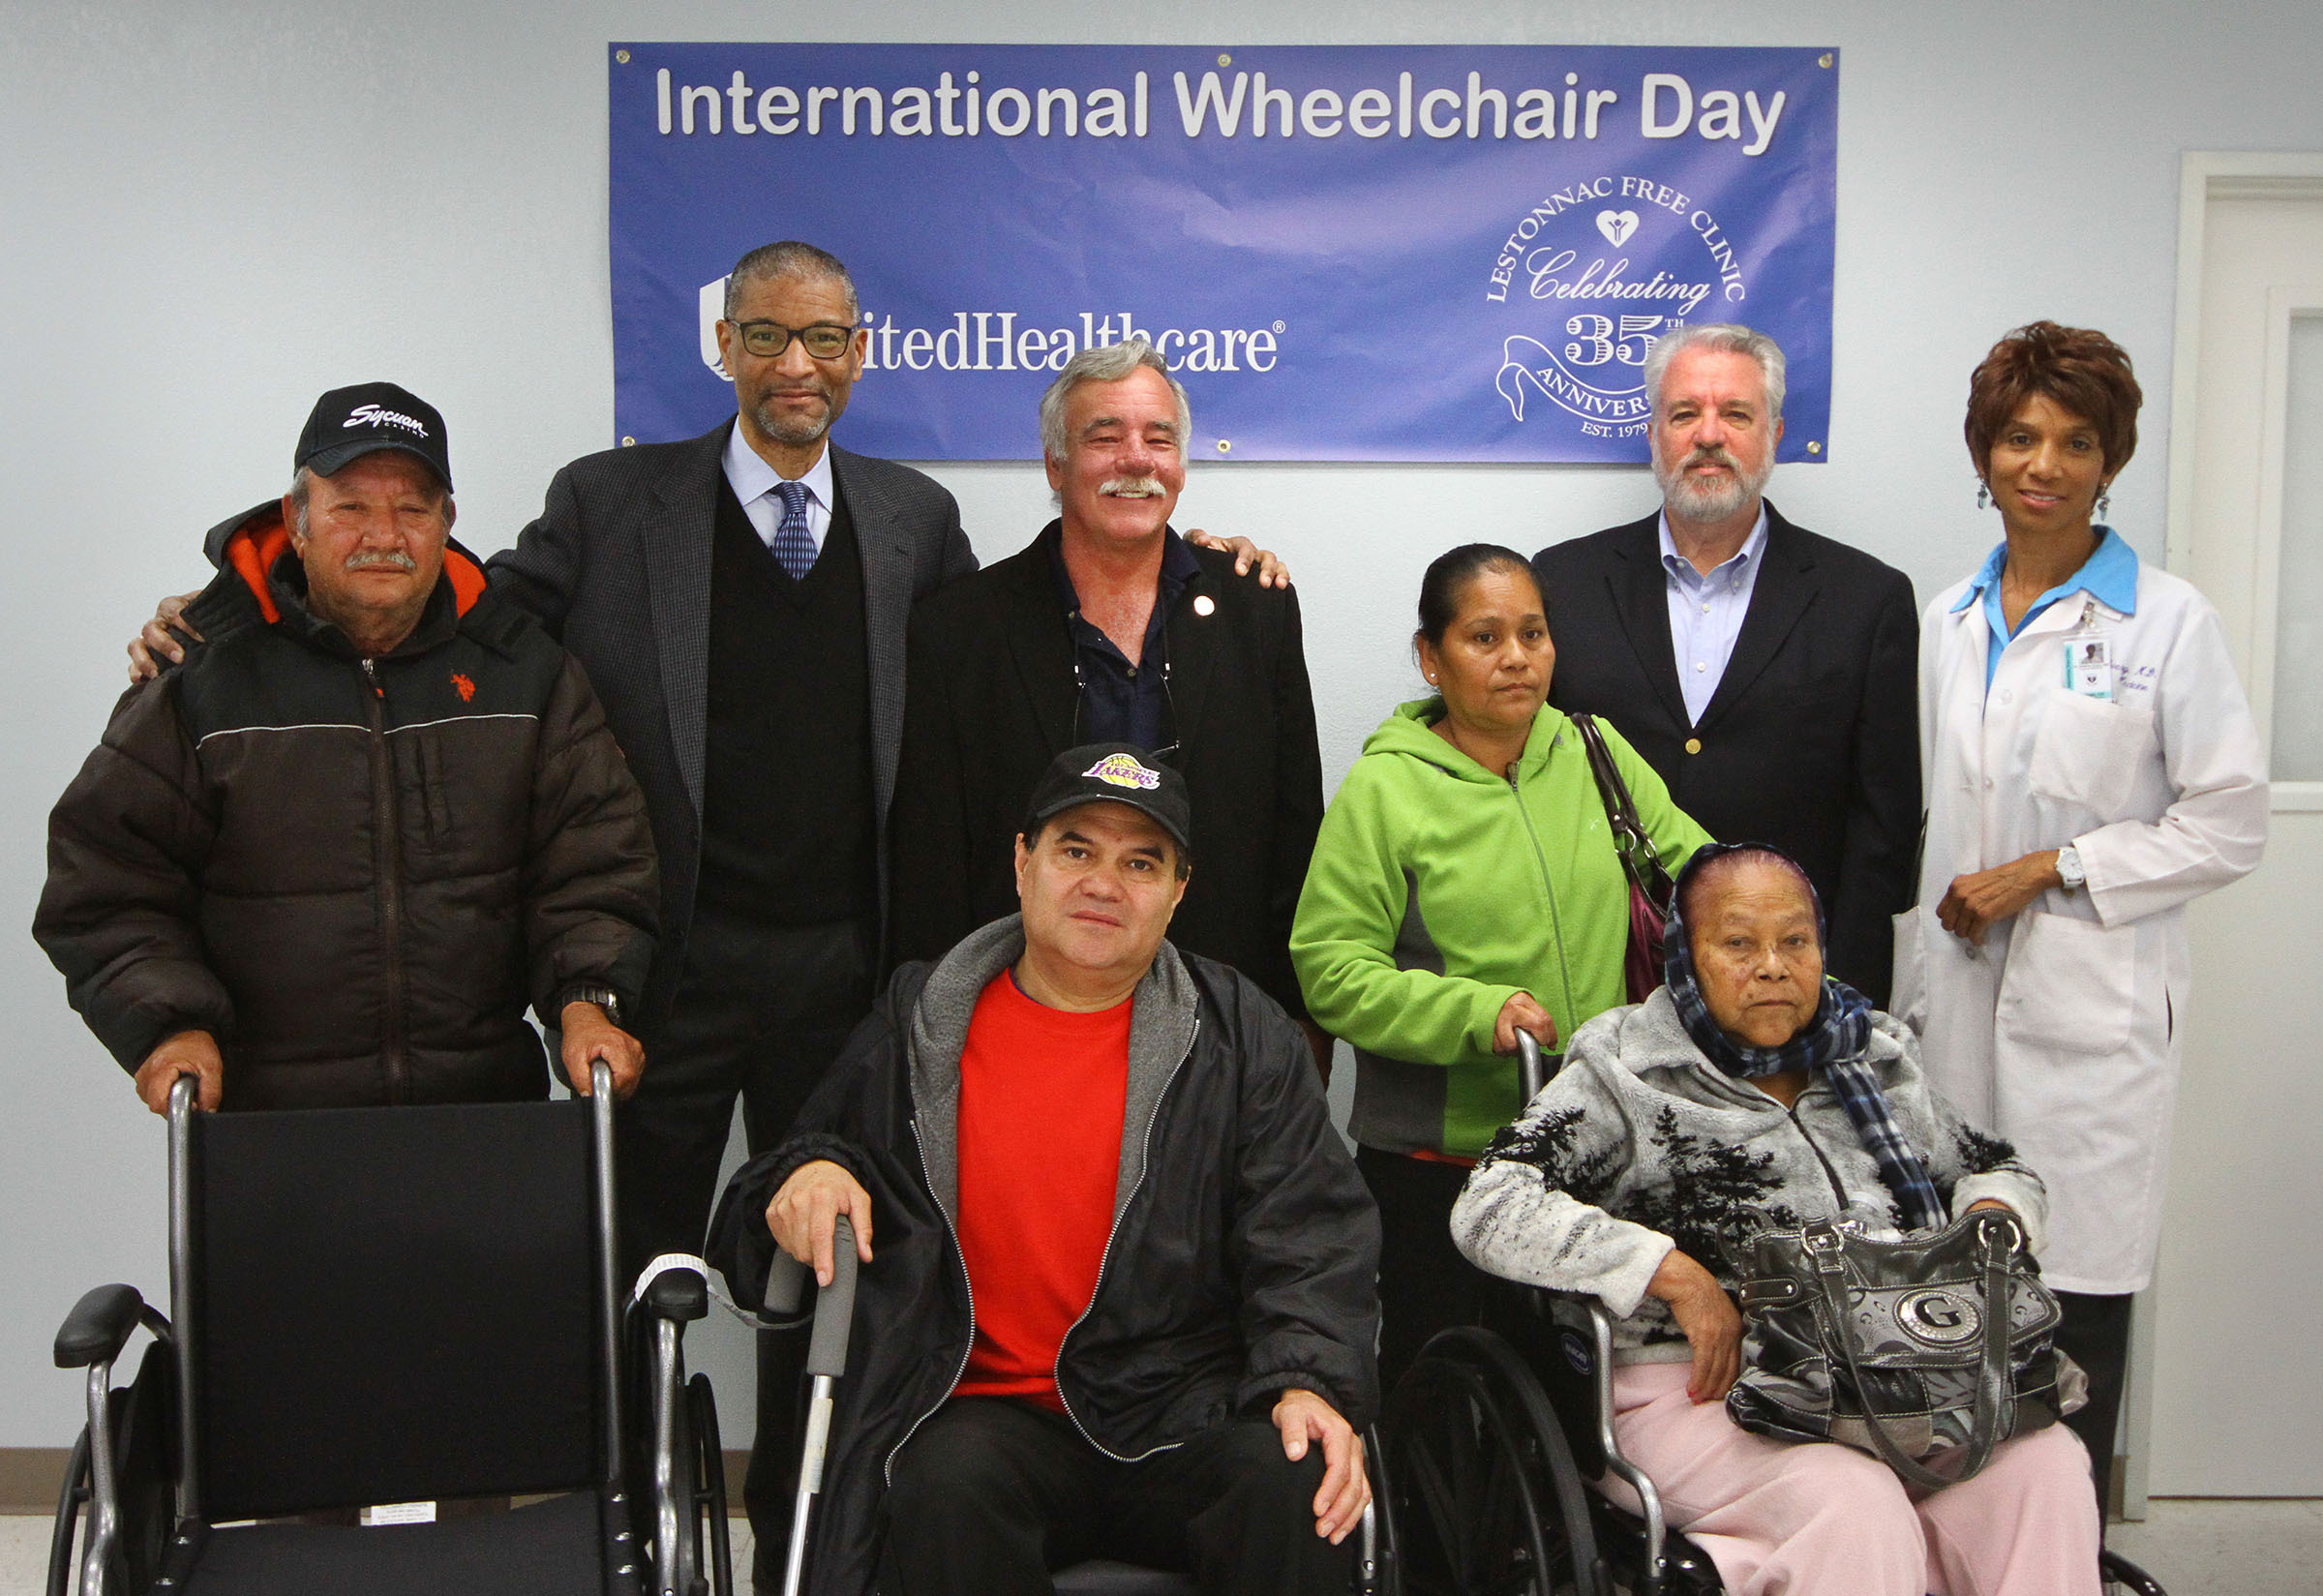 In honor of International Wheelchair Day, UnitedHealthcare on Friday, Feb. 28, donated 10 wheelchairs to Lestonnac Free Clinic's patients at the Orange clinic. Sitting in wheelchairs left to right: Antonio Alcala, 53, of Anaheim, and Antonia Palacios, 68, of Santa Ana. Standing left to right: Belizario Garcia of Santa Ana, who received the wheelchair on behalf of his wife Elizabeth Penaloza; Keith Emmons, M.D., market medical director, UnitedHealthcare; Ed Gerber, executive director of Lestonnac; Maria Chamu, daughter of Palacios; Russ Bennett, vice president, Latino Health Solutions, UnitedHealthcare; and Andrea Avery, M.D., Lestonnac board member and volunteer physician (Photo: Jamie Rector).